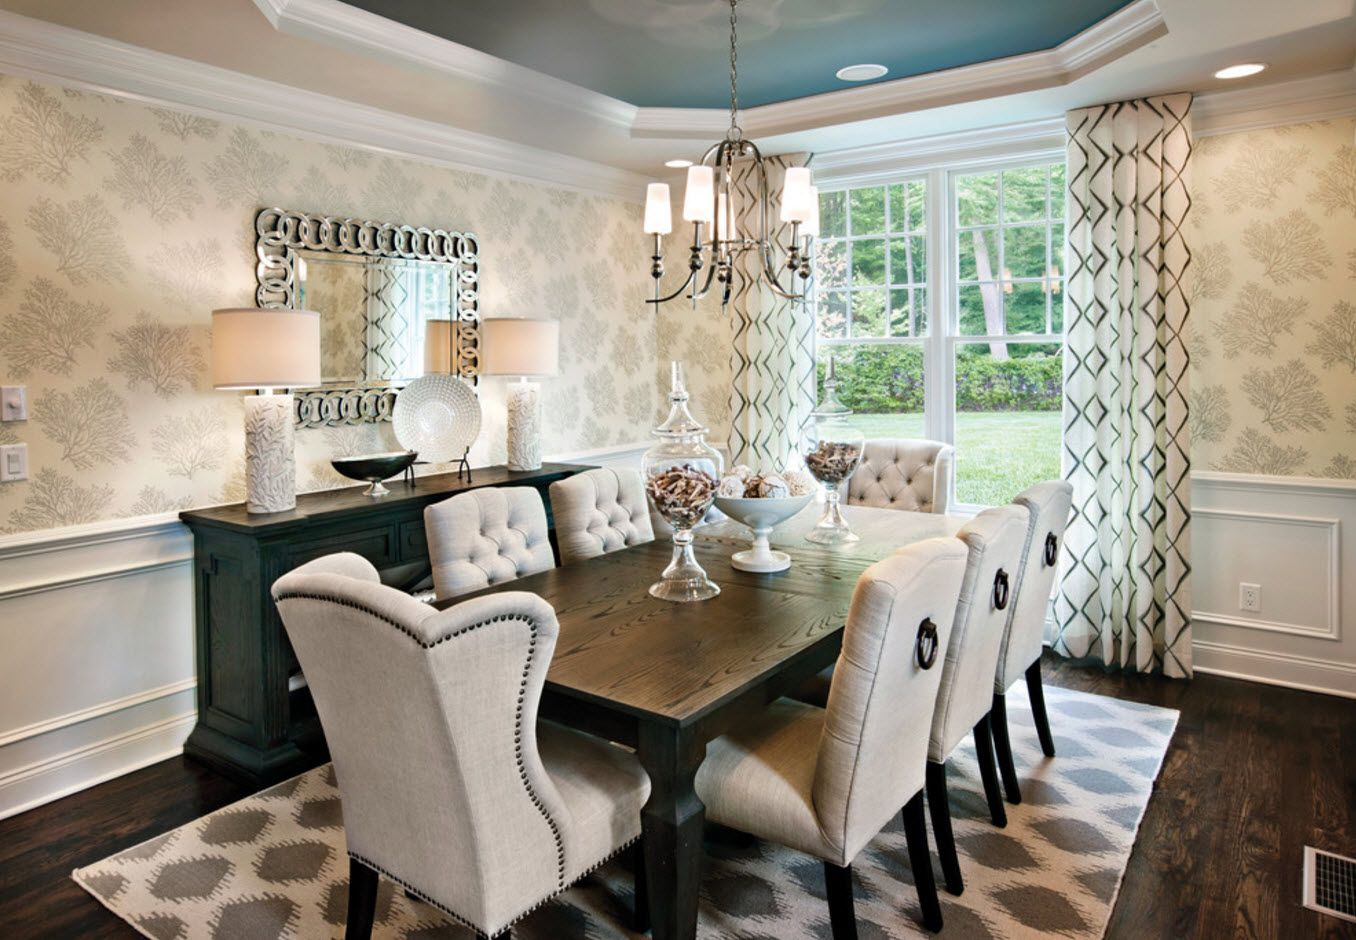 Complex color textured classic furnished dining room near the large window